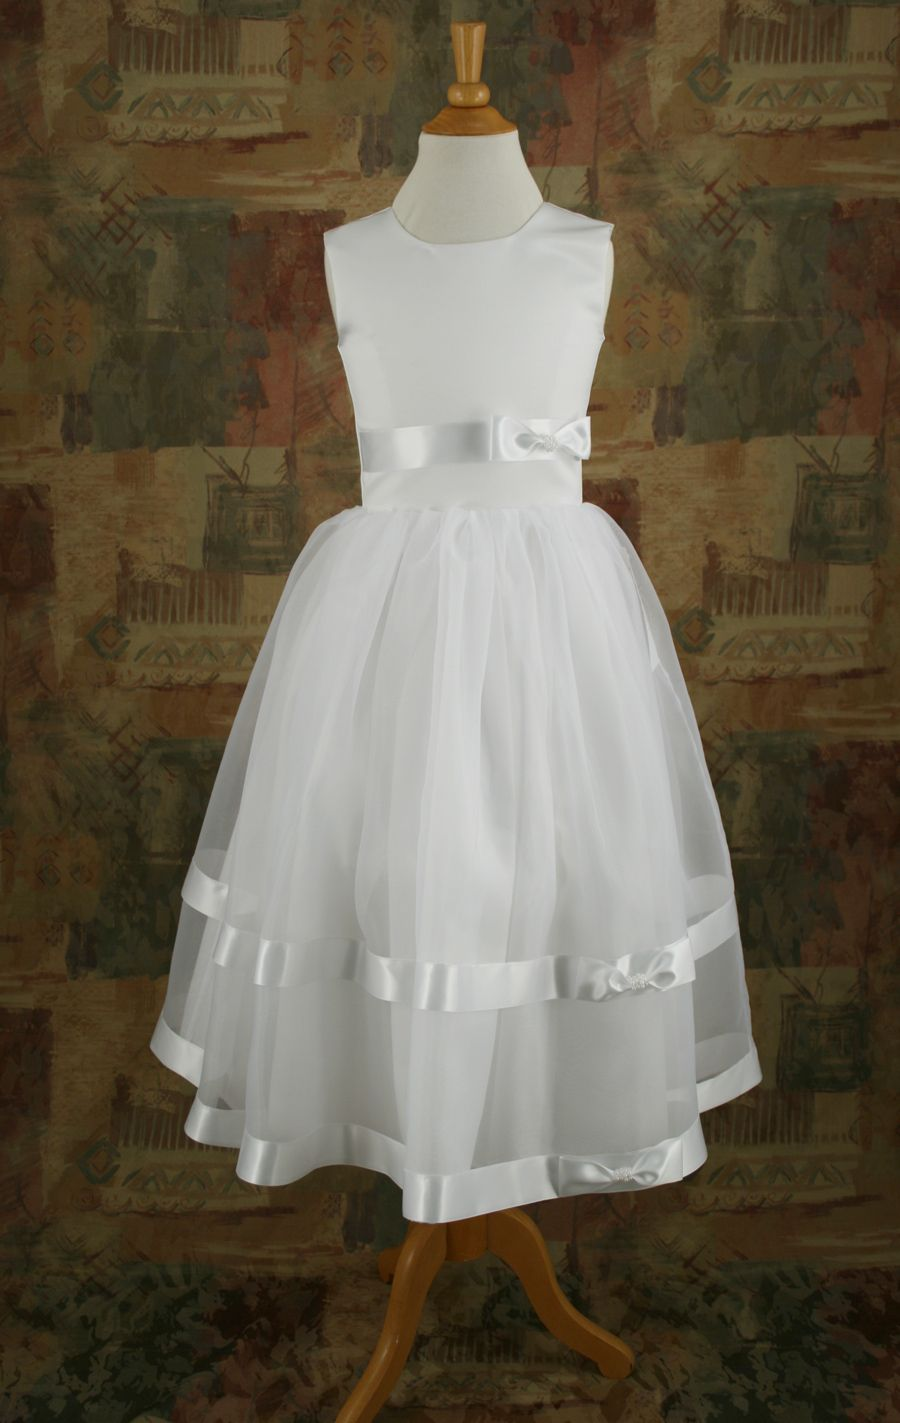 Canadian Profiles 2201 Flower Girl Dress. Delicate with